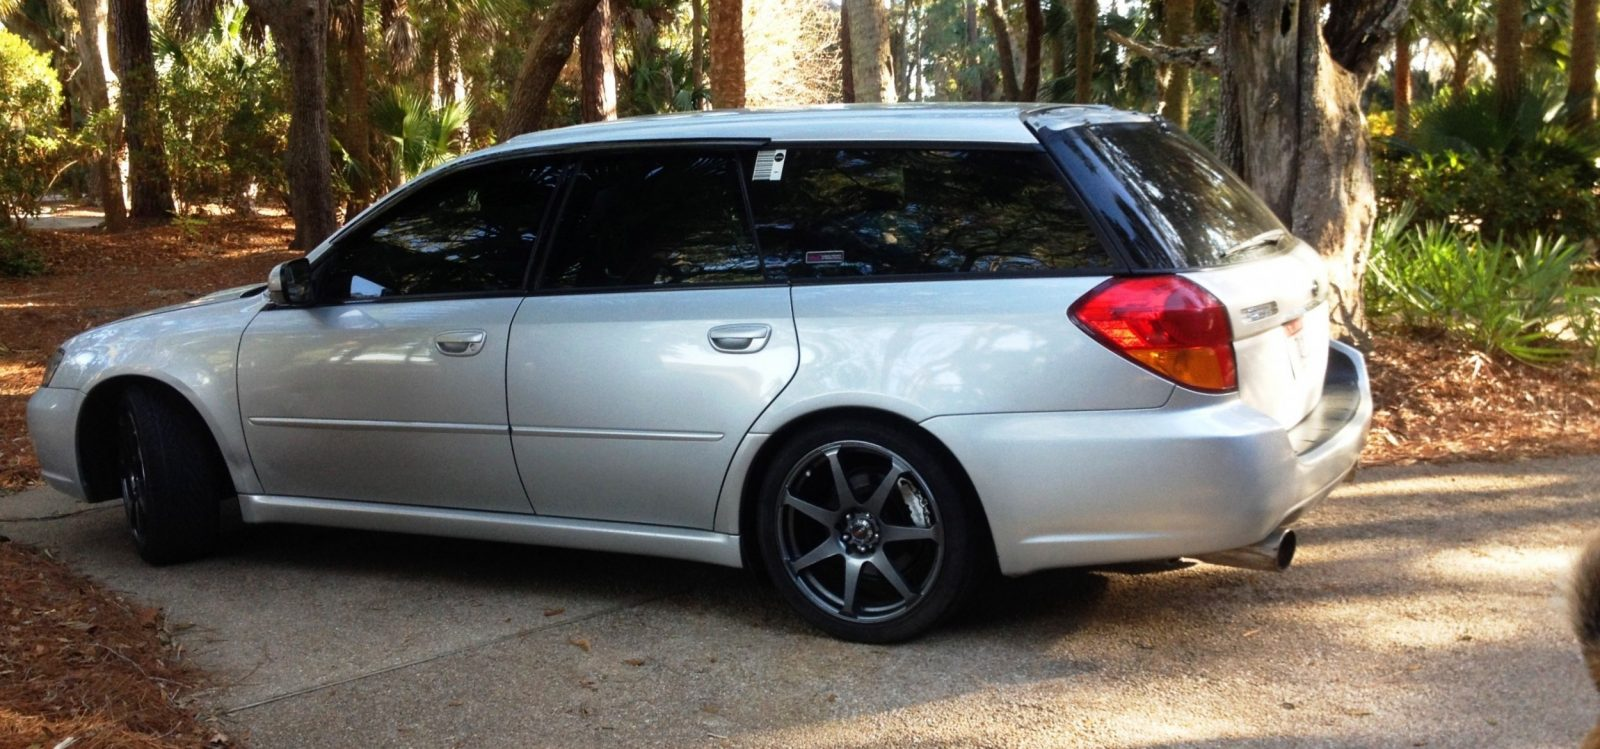 My Car In Detailed Turntable Animations + 30 Photos -- 2006 Subaru Legacy GT Limited  24